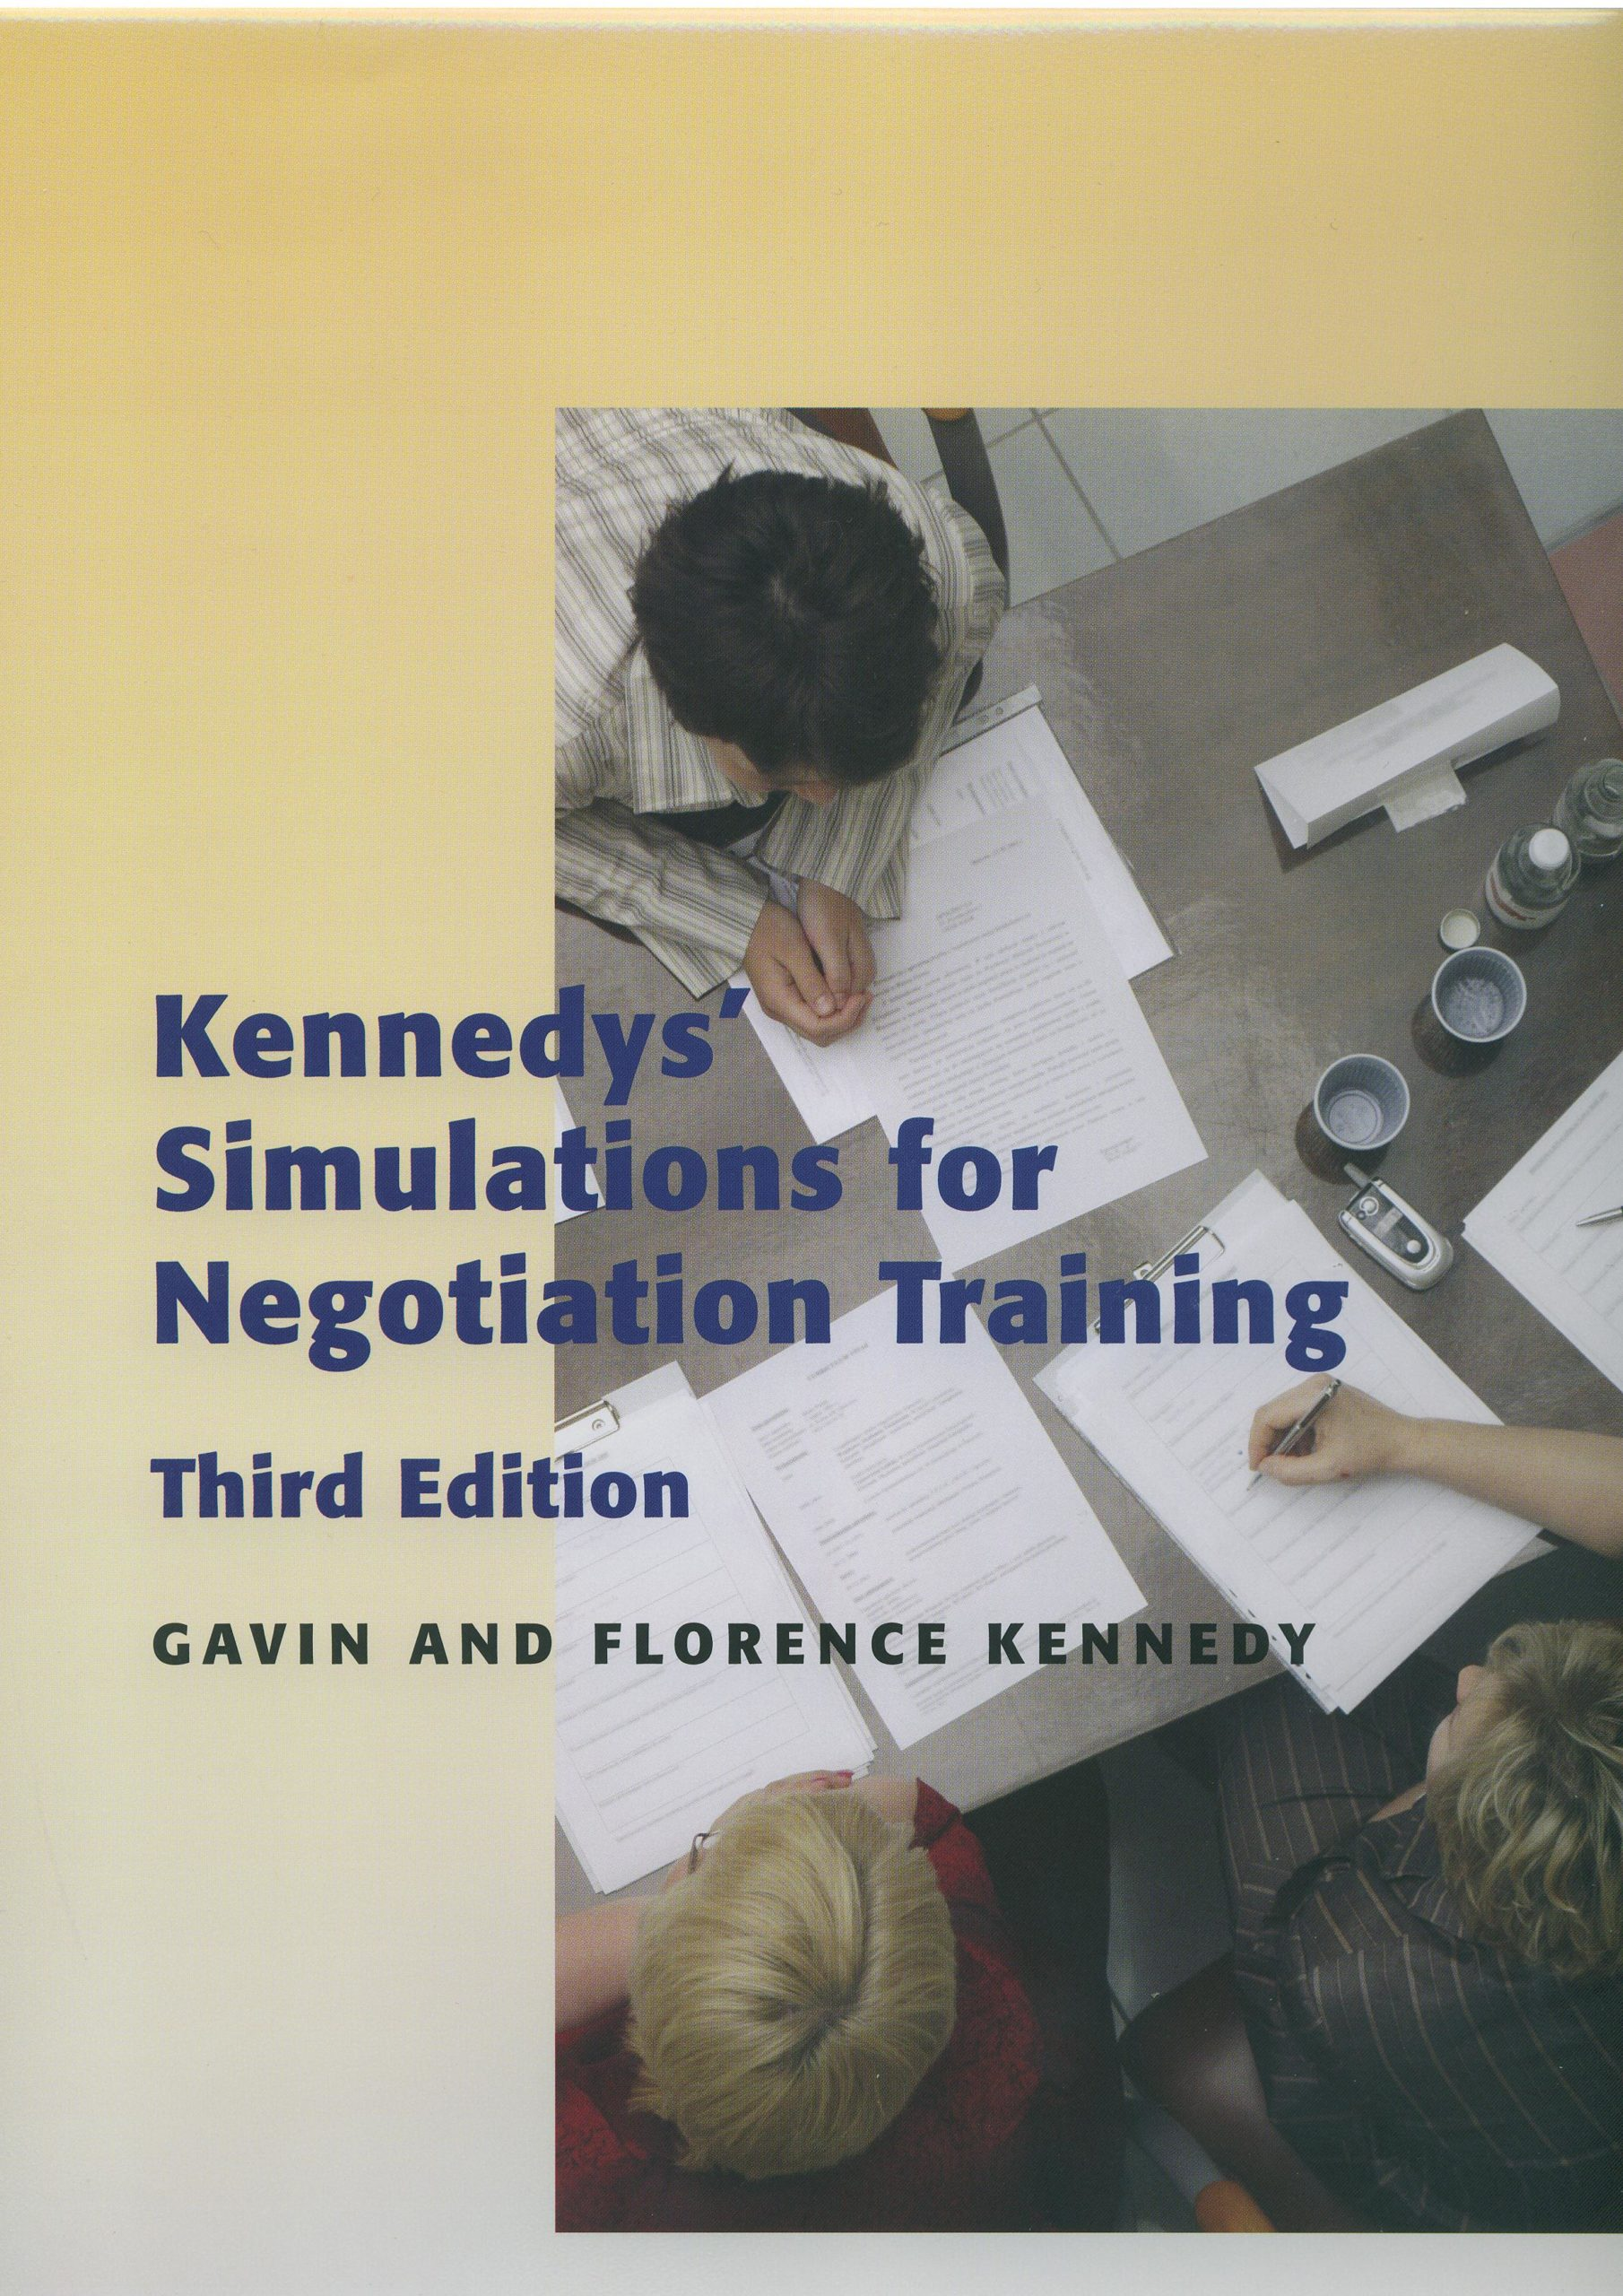 Kennedys Simulations